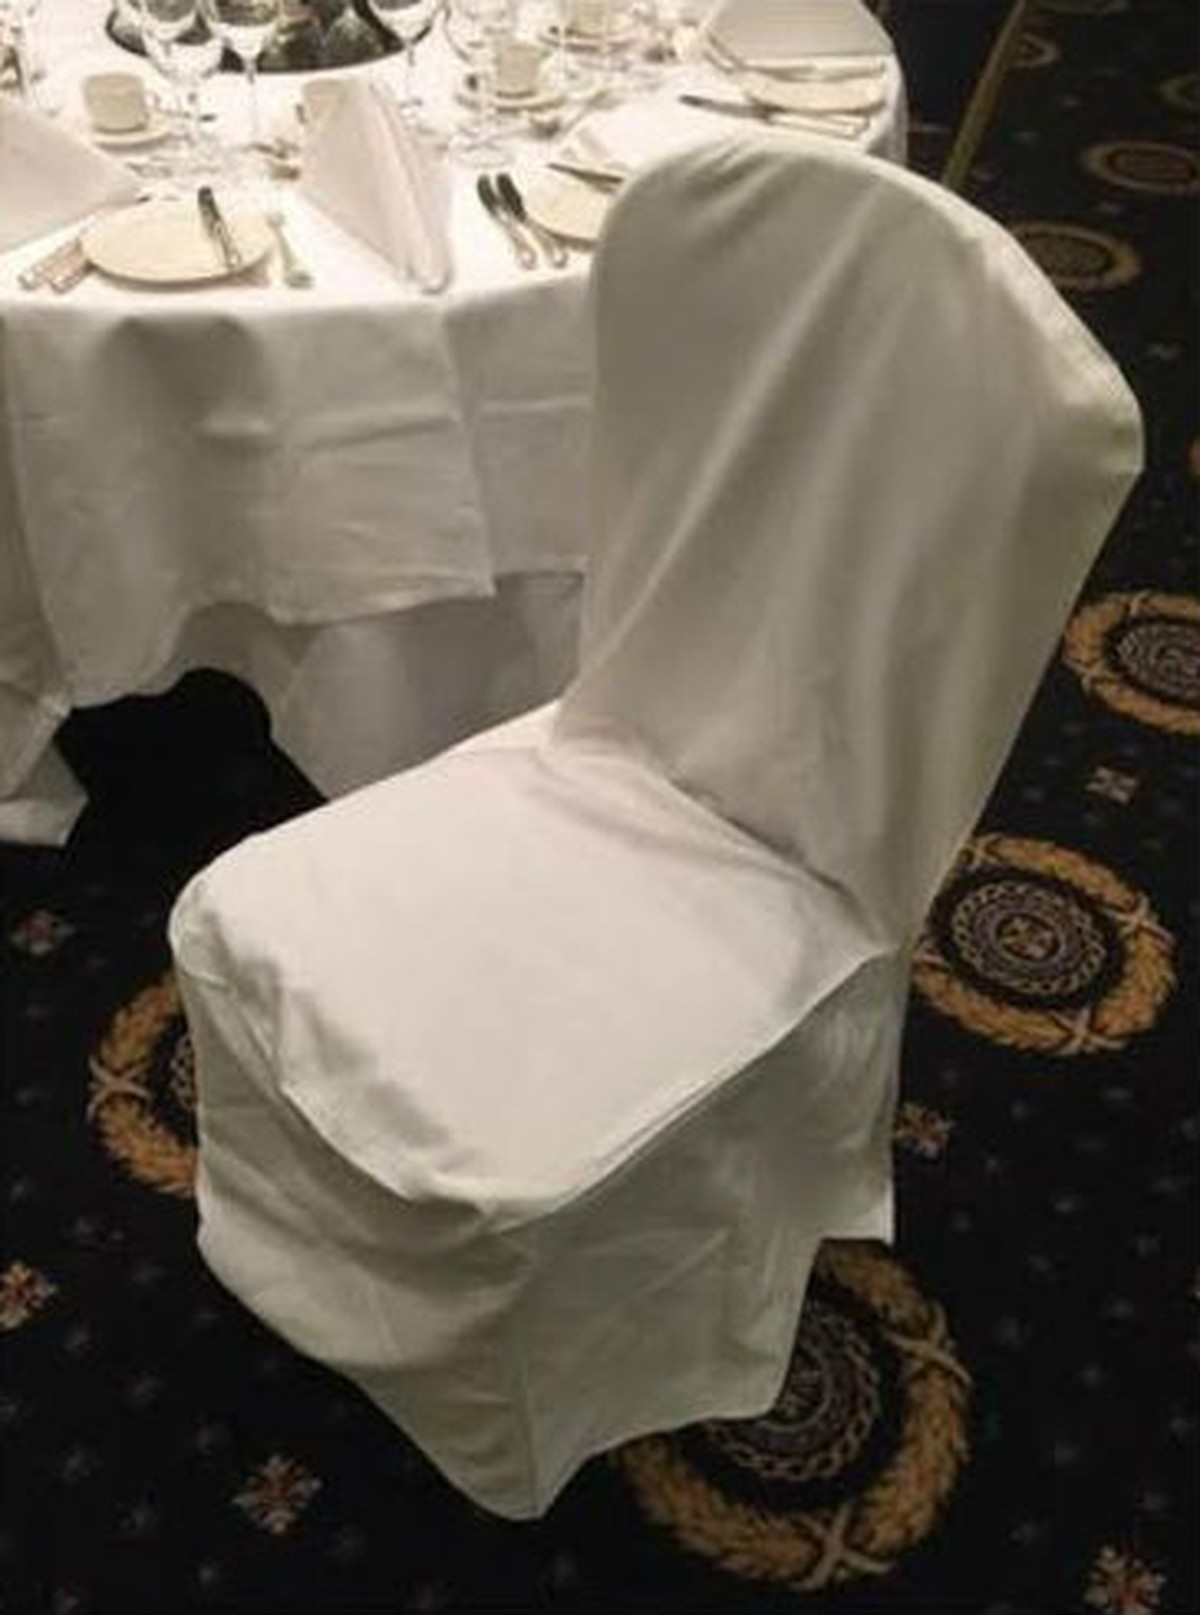 chair covers for weddings essex parsons chairs with arms secondhand catering equipment table linen and decor